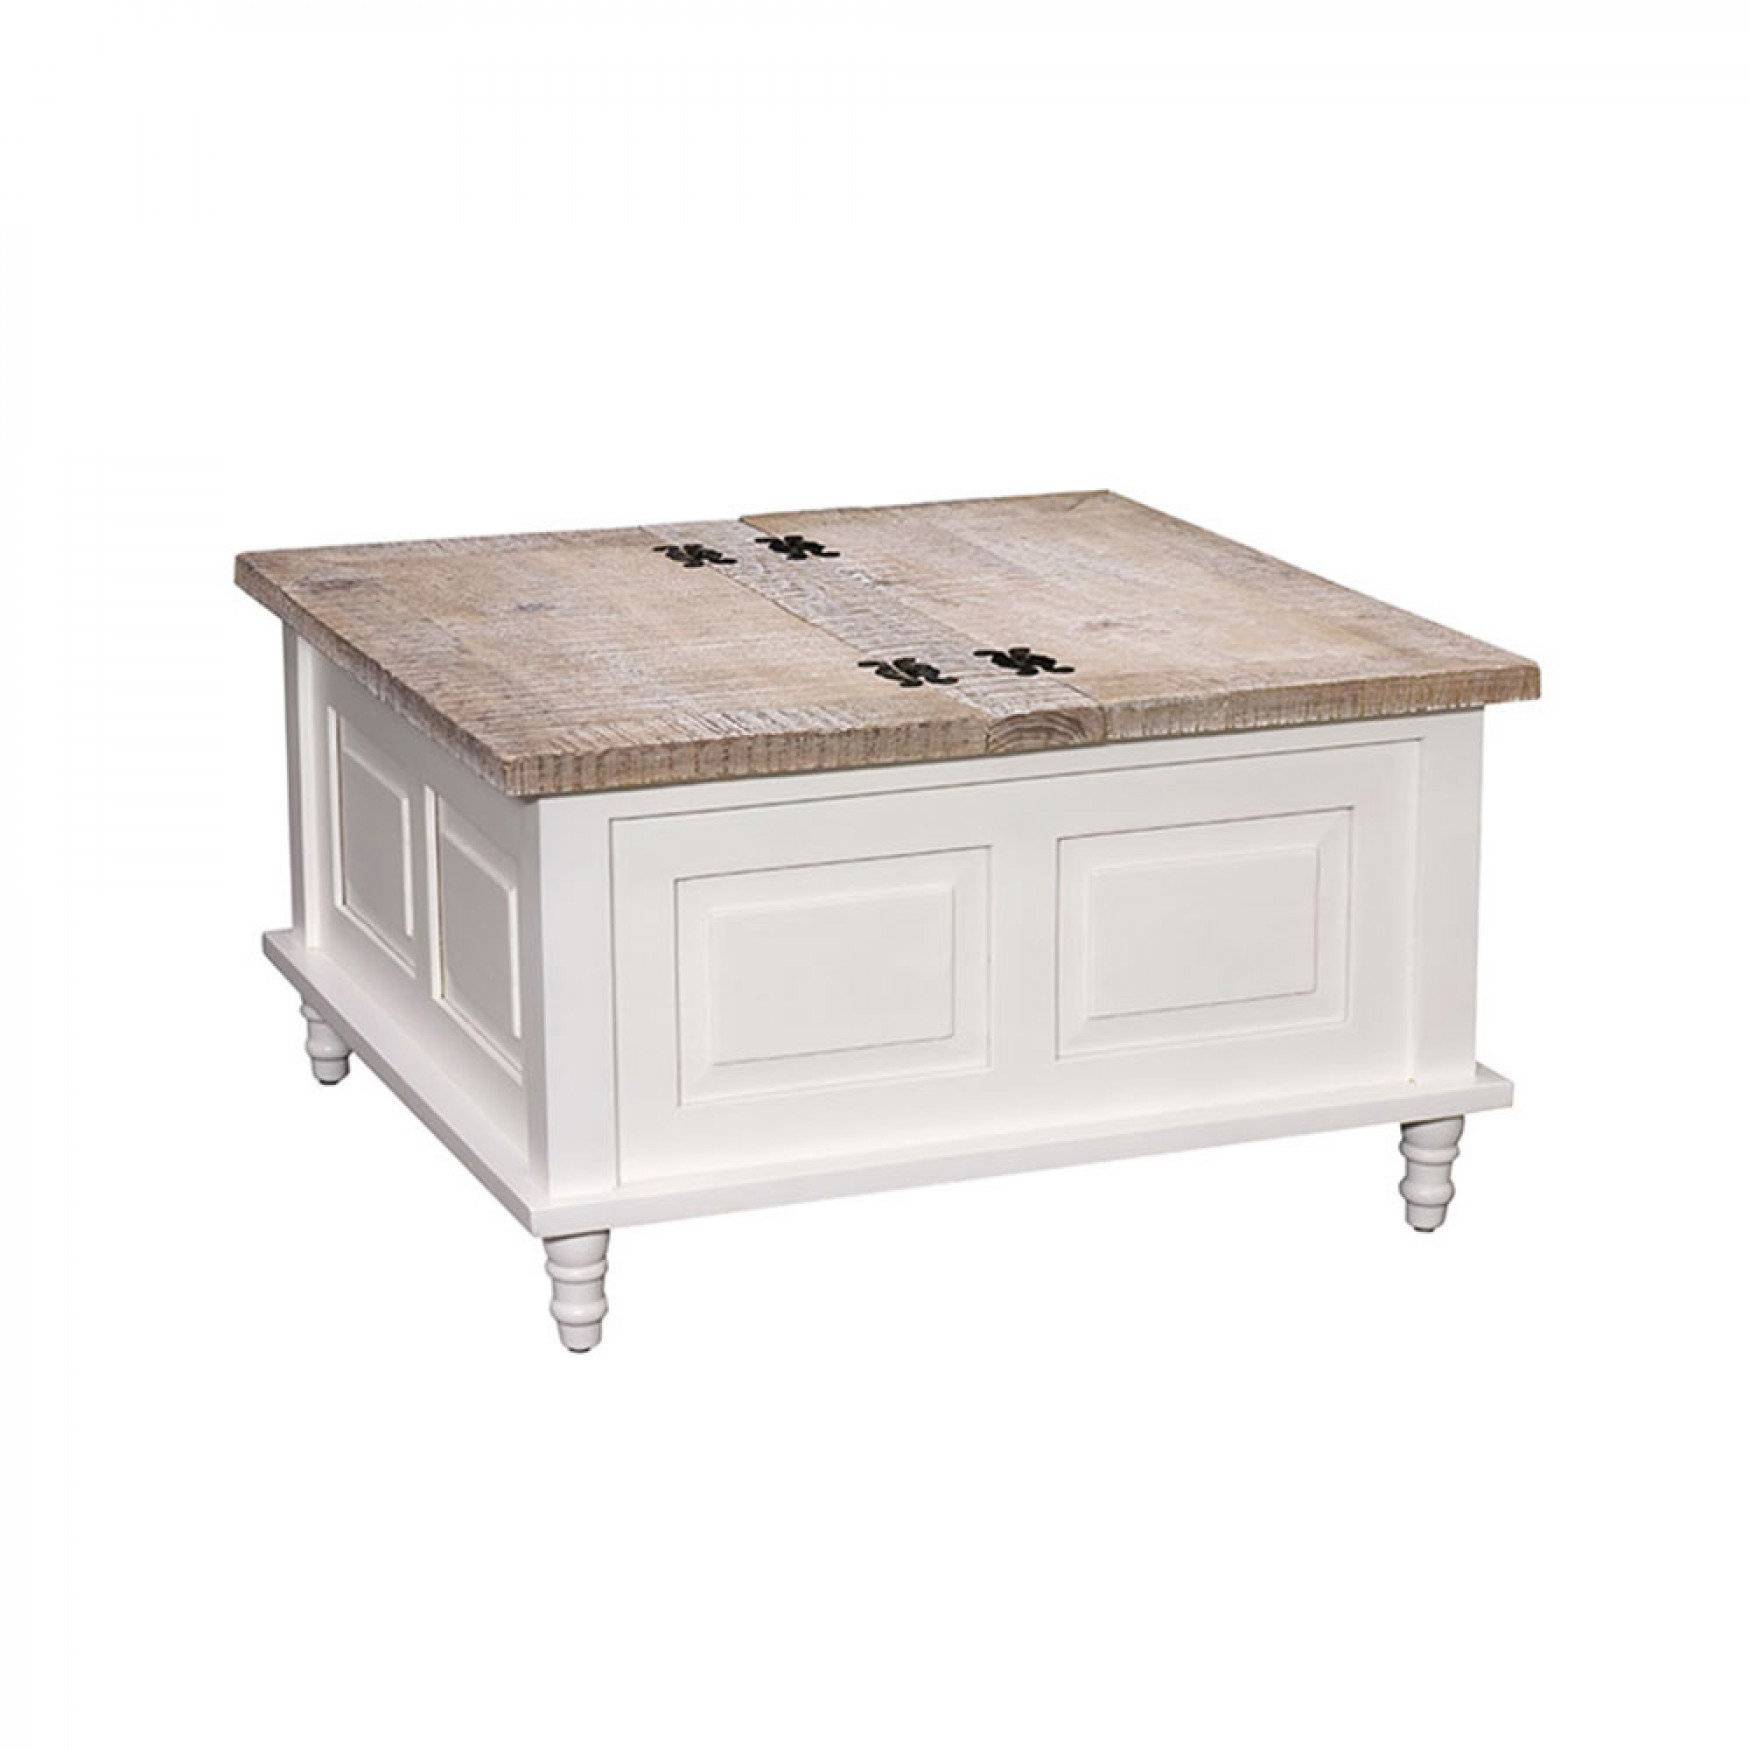 Cottonwood Square Coffee Table Storage Trunk 80 X 80 in measurements 1750 X 1750